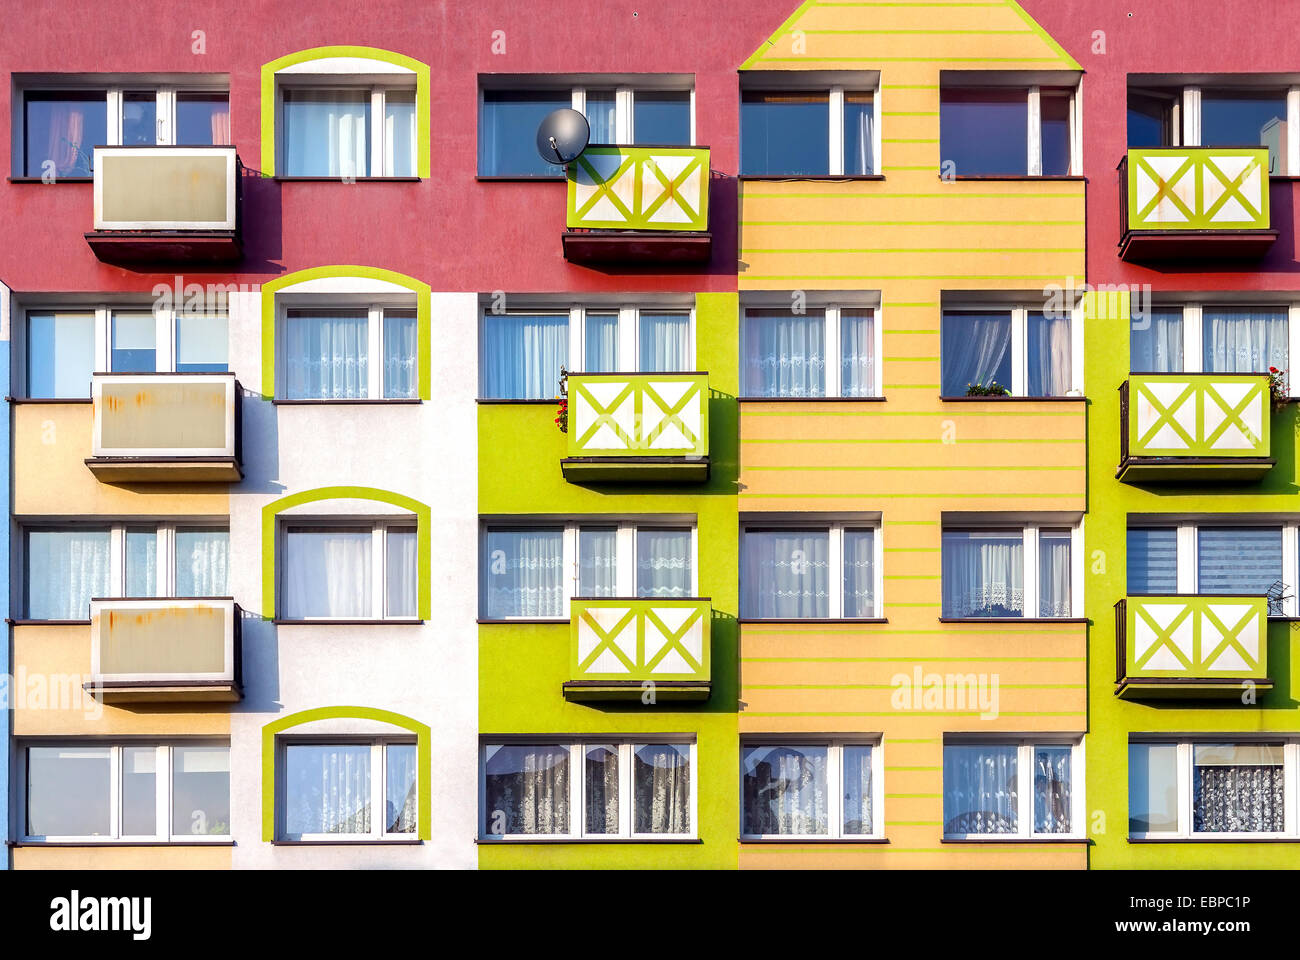 Windows and colorful facade of residential building. - Stock Image